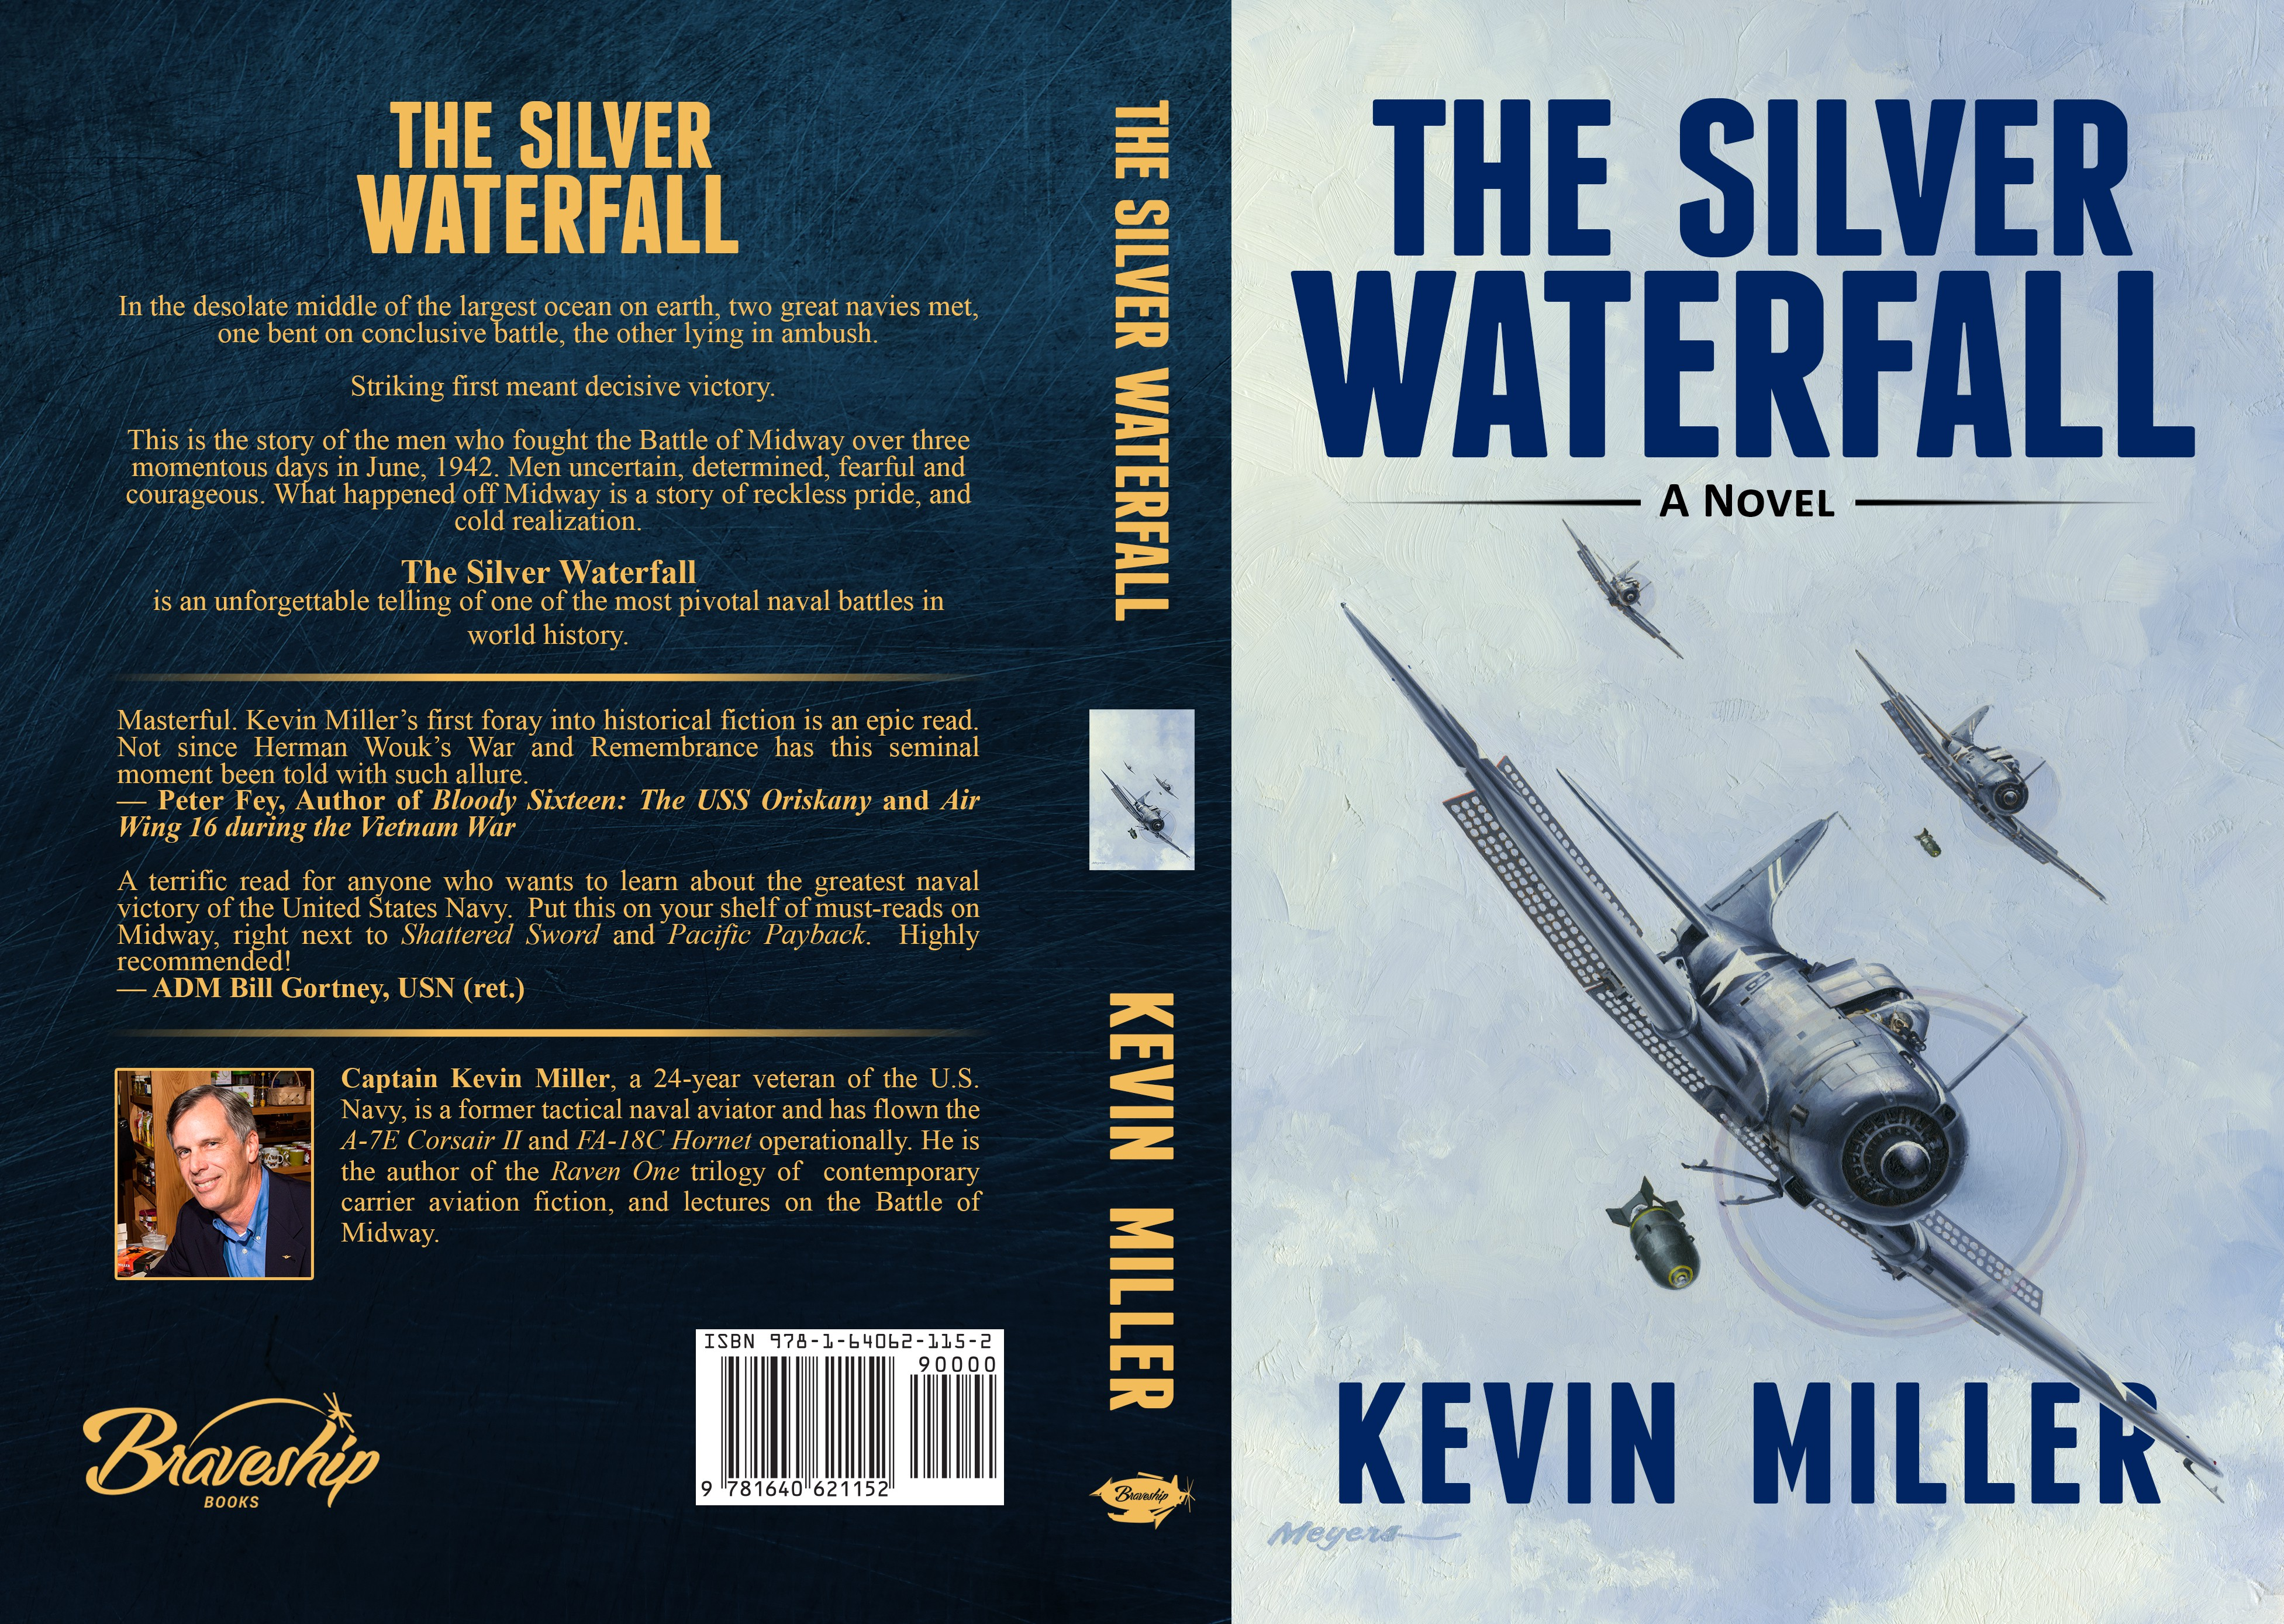 The Silver Waterfall